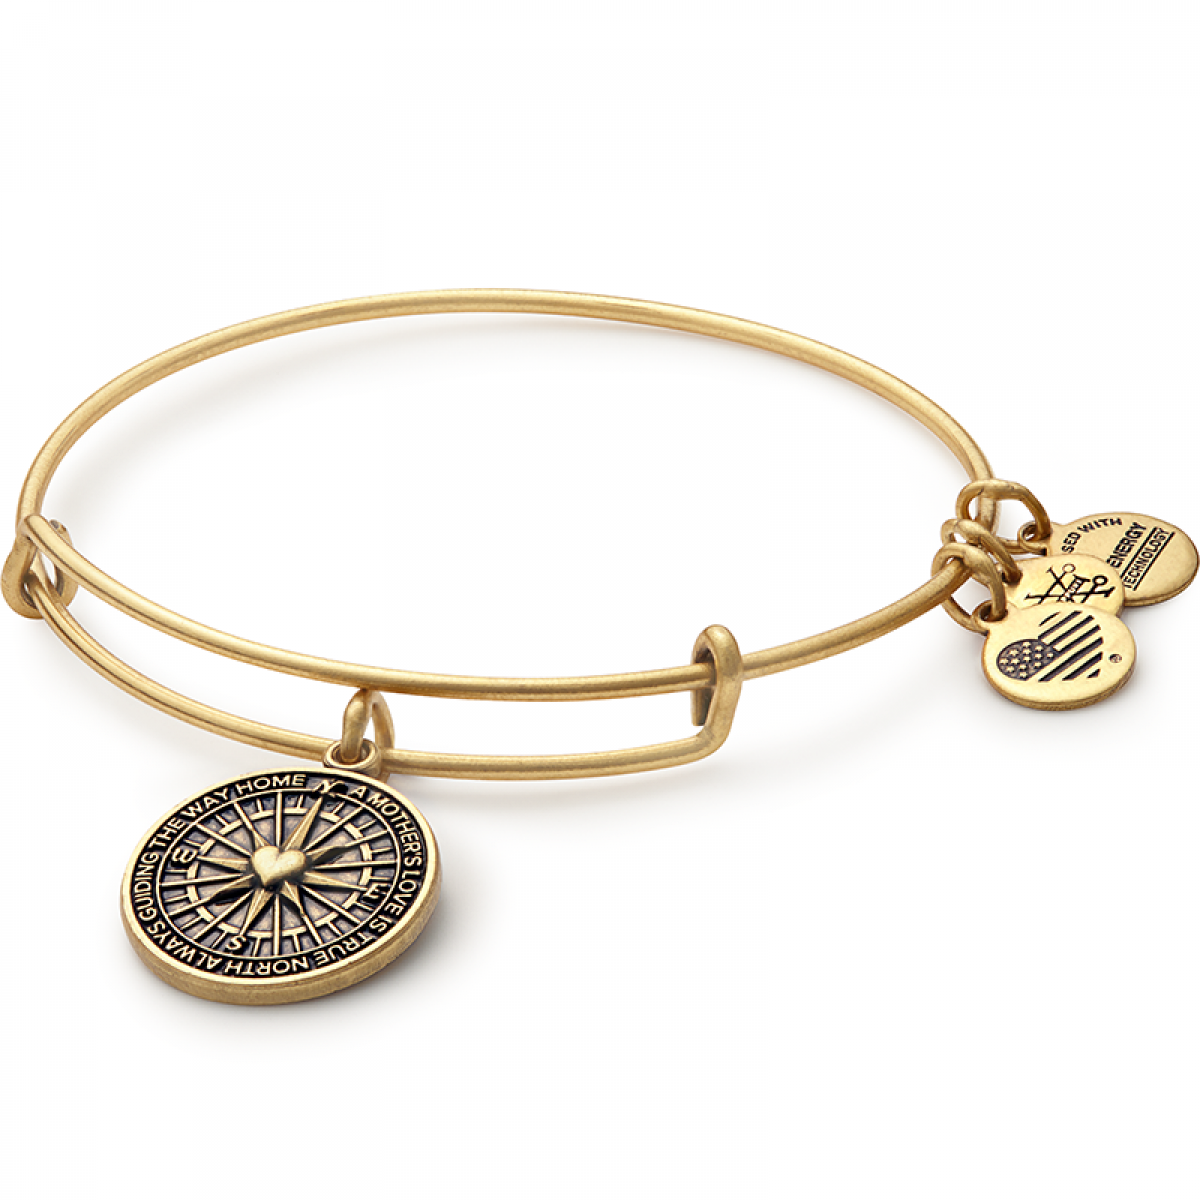 Alex and ani true direction timeless role model a mother gives